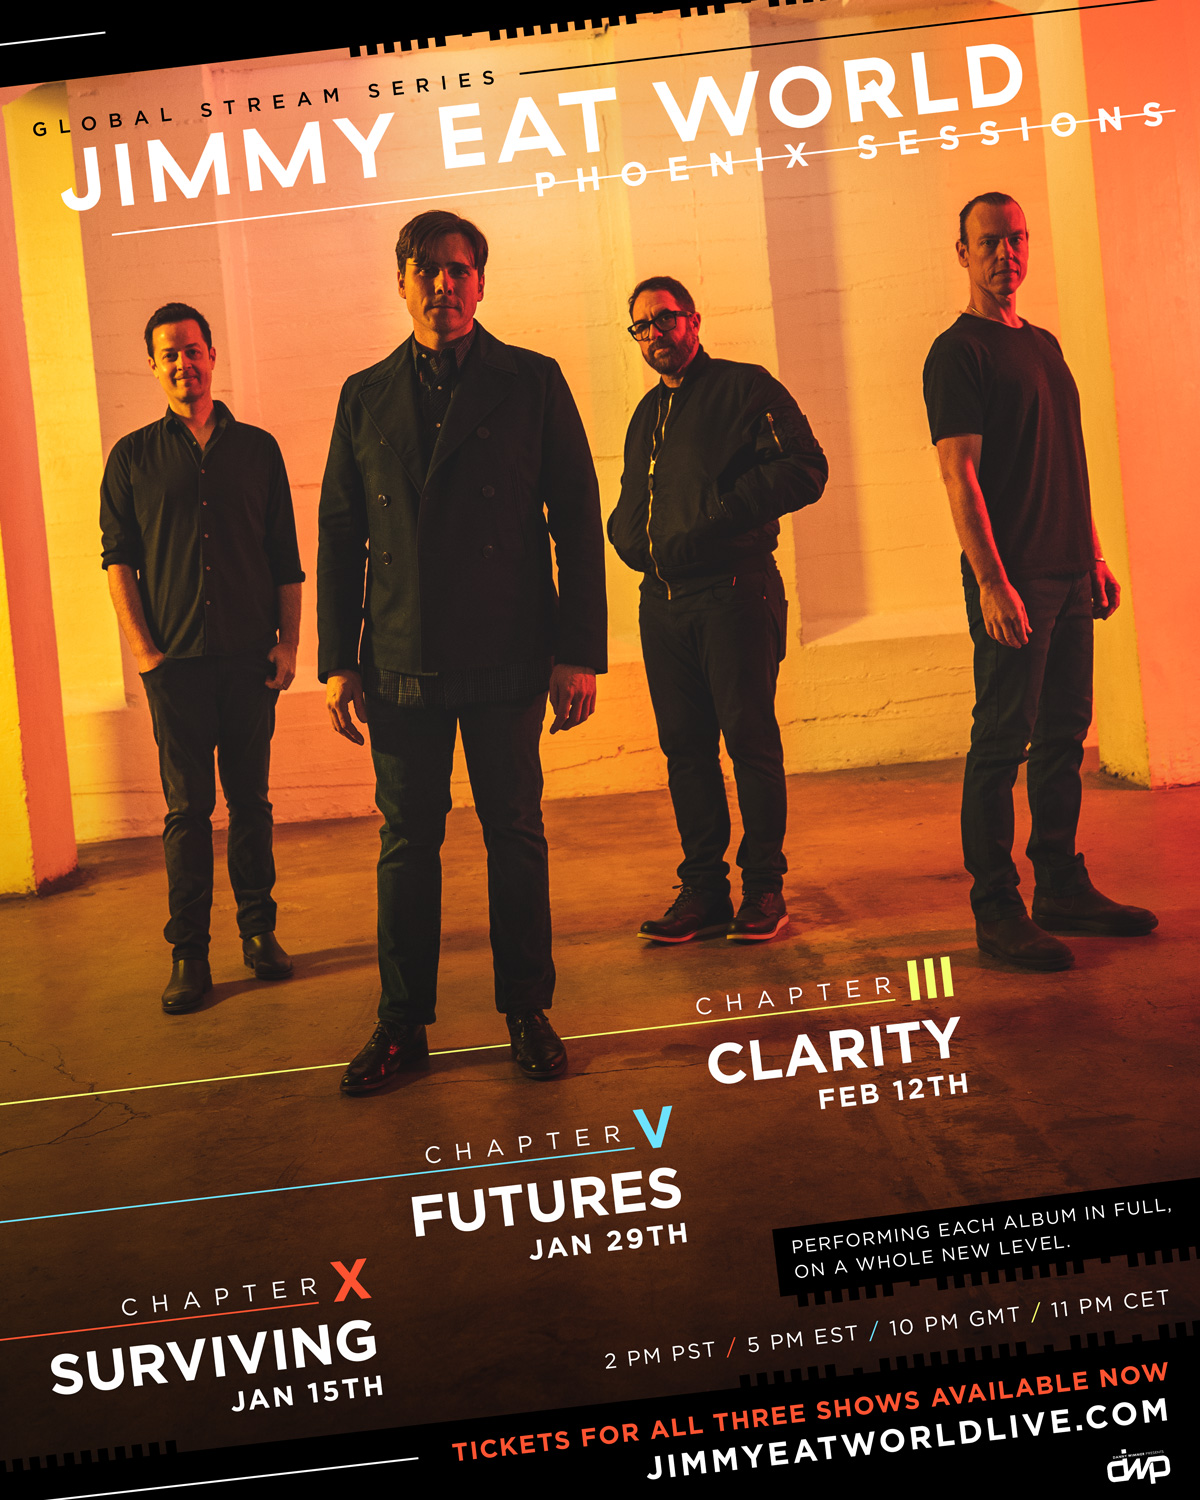 Jimmy-Eat-World-livestream full album concert surviving clairty futures